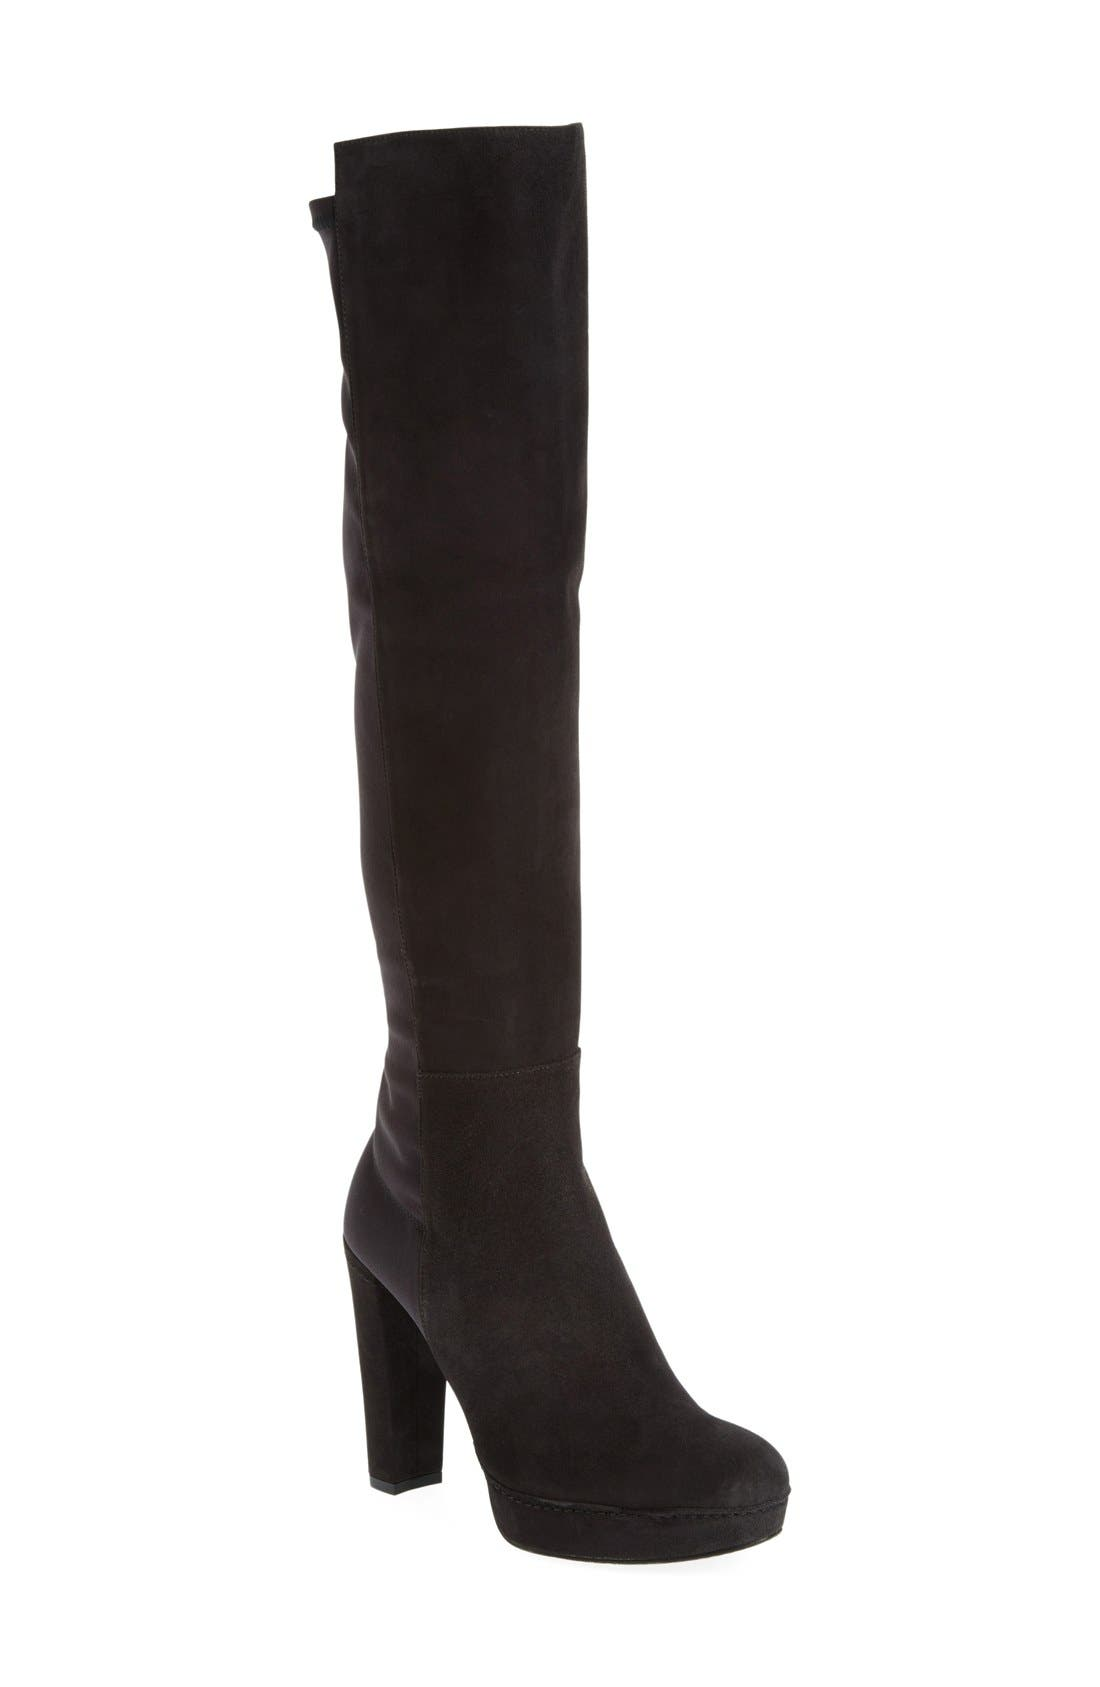 Alternate Image 1 Selected - Stuart Weitzman 'Demistrong' Over the Knee Boot (Women)